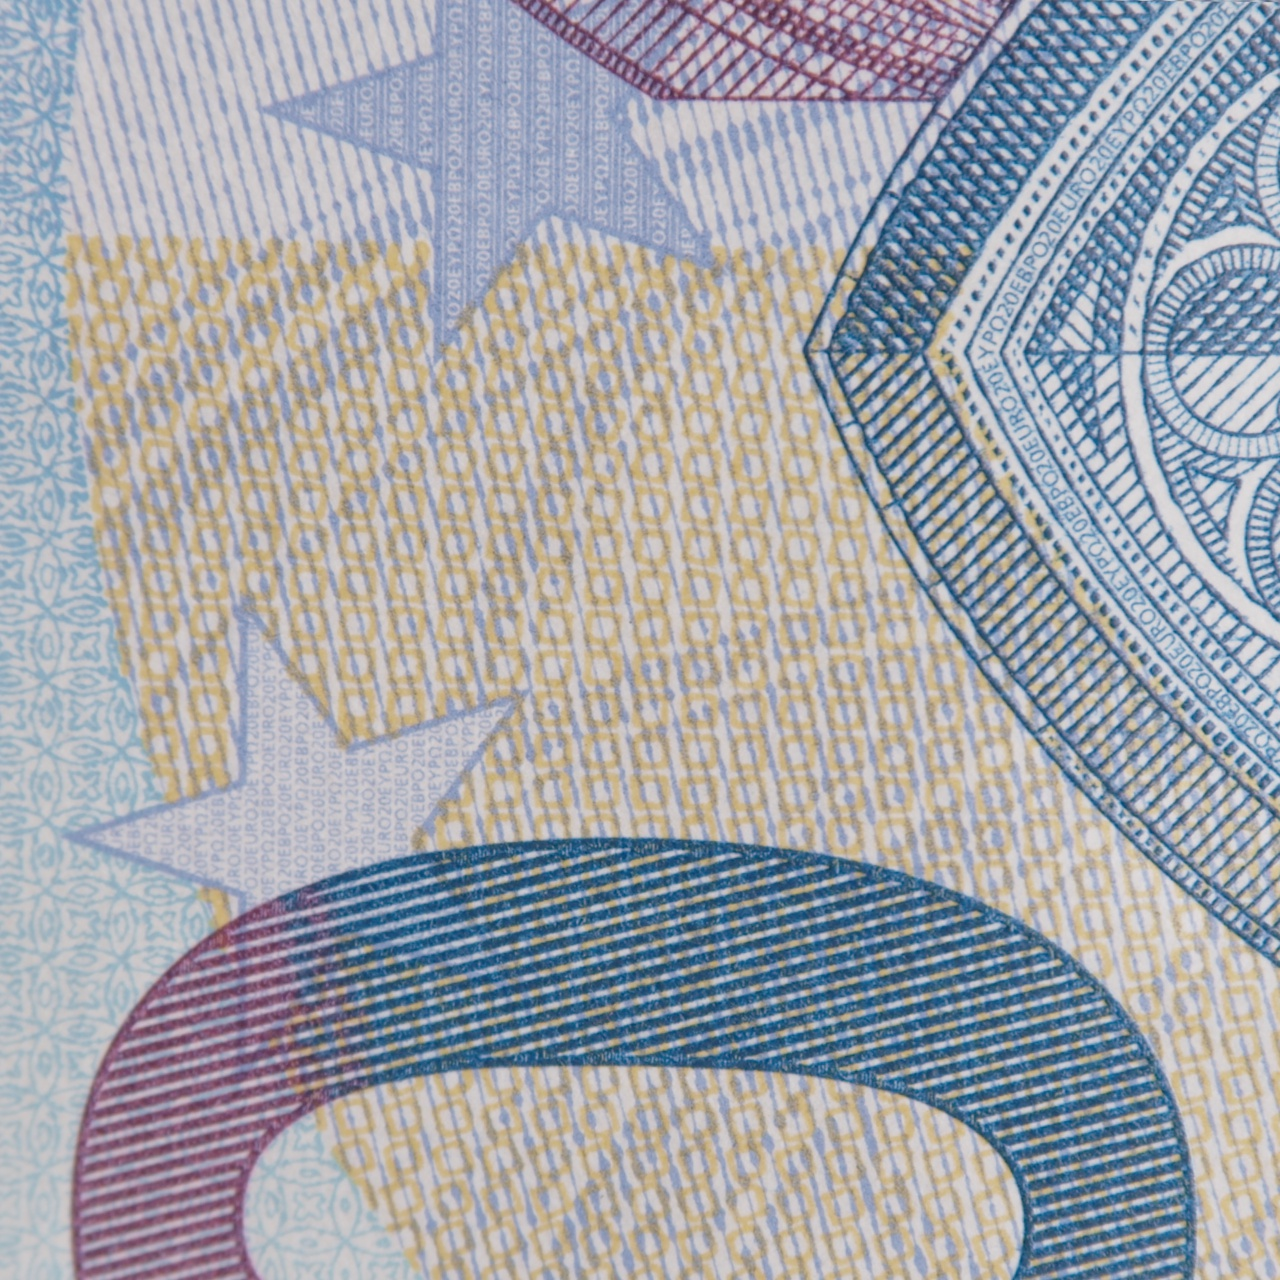 Euro_Banknotes_Detail_closer_Macro.jpg